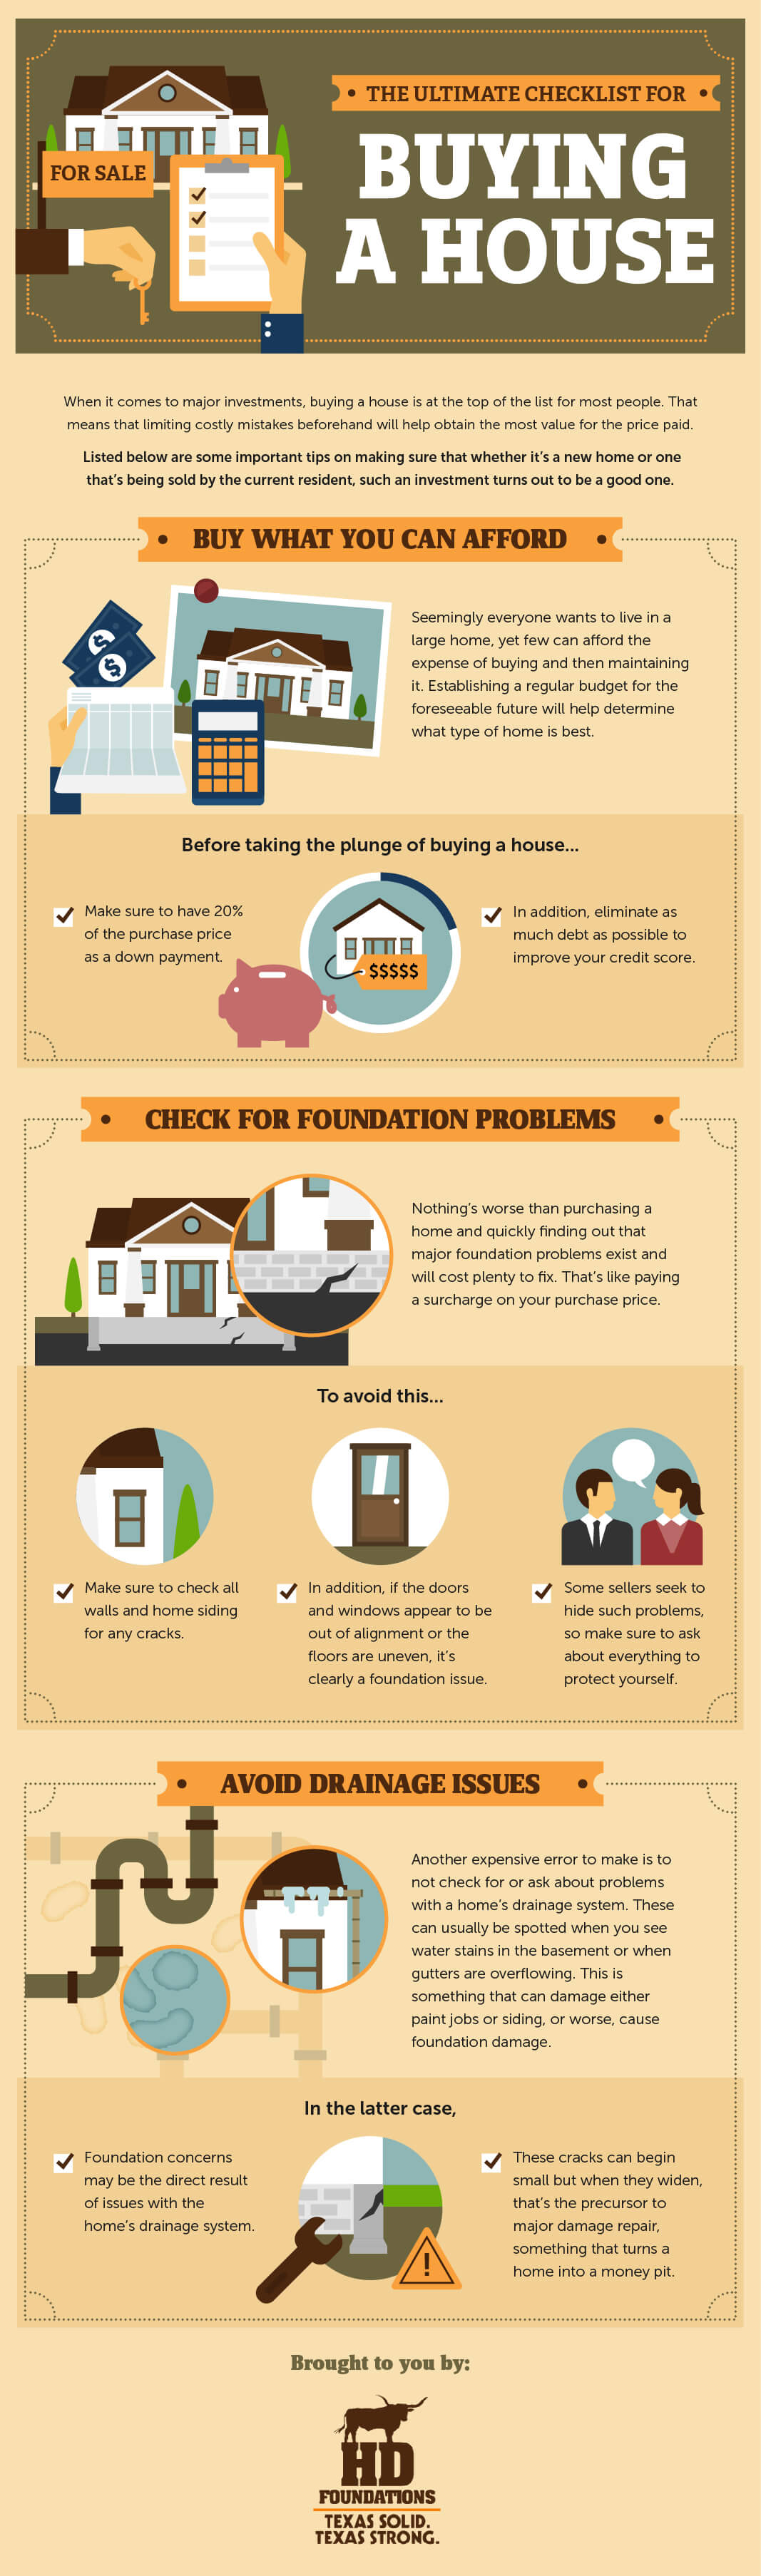 The Ultimate Checklist For Buying a House